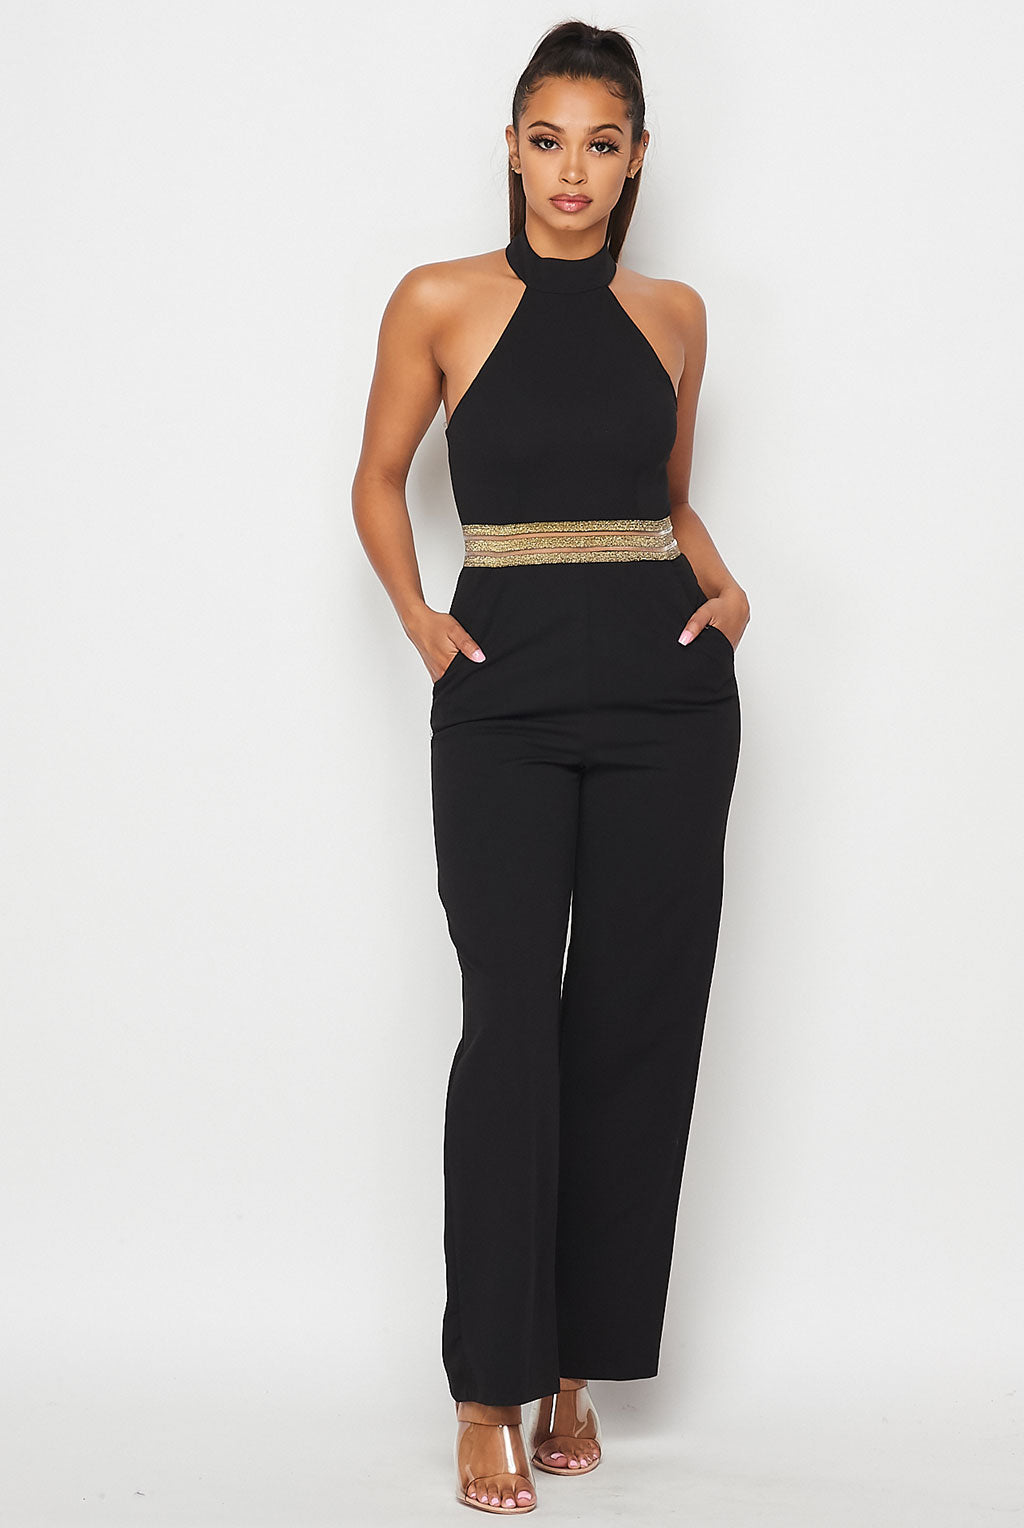 Teeze Me | Halter Neck Metallic Waist Pockets Jumpsuit | Black/Gold